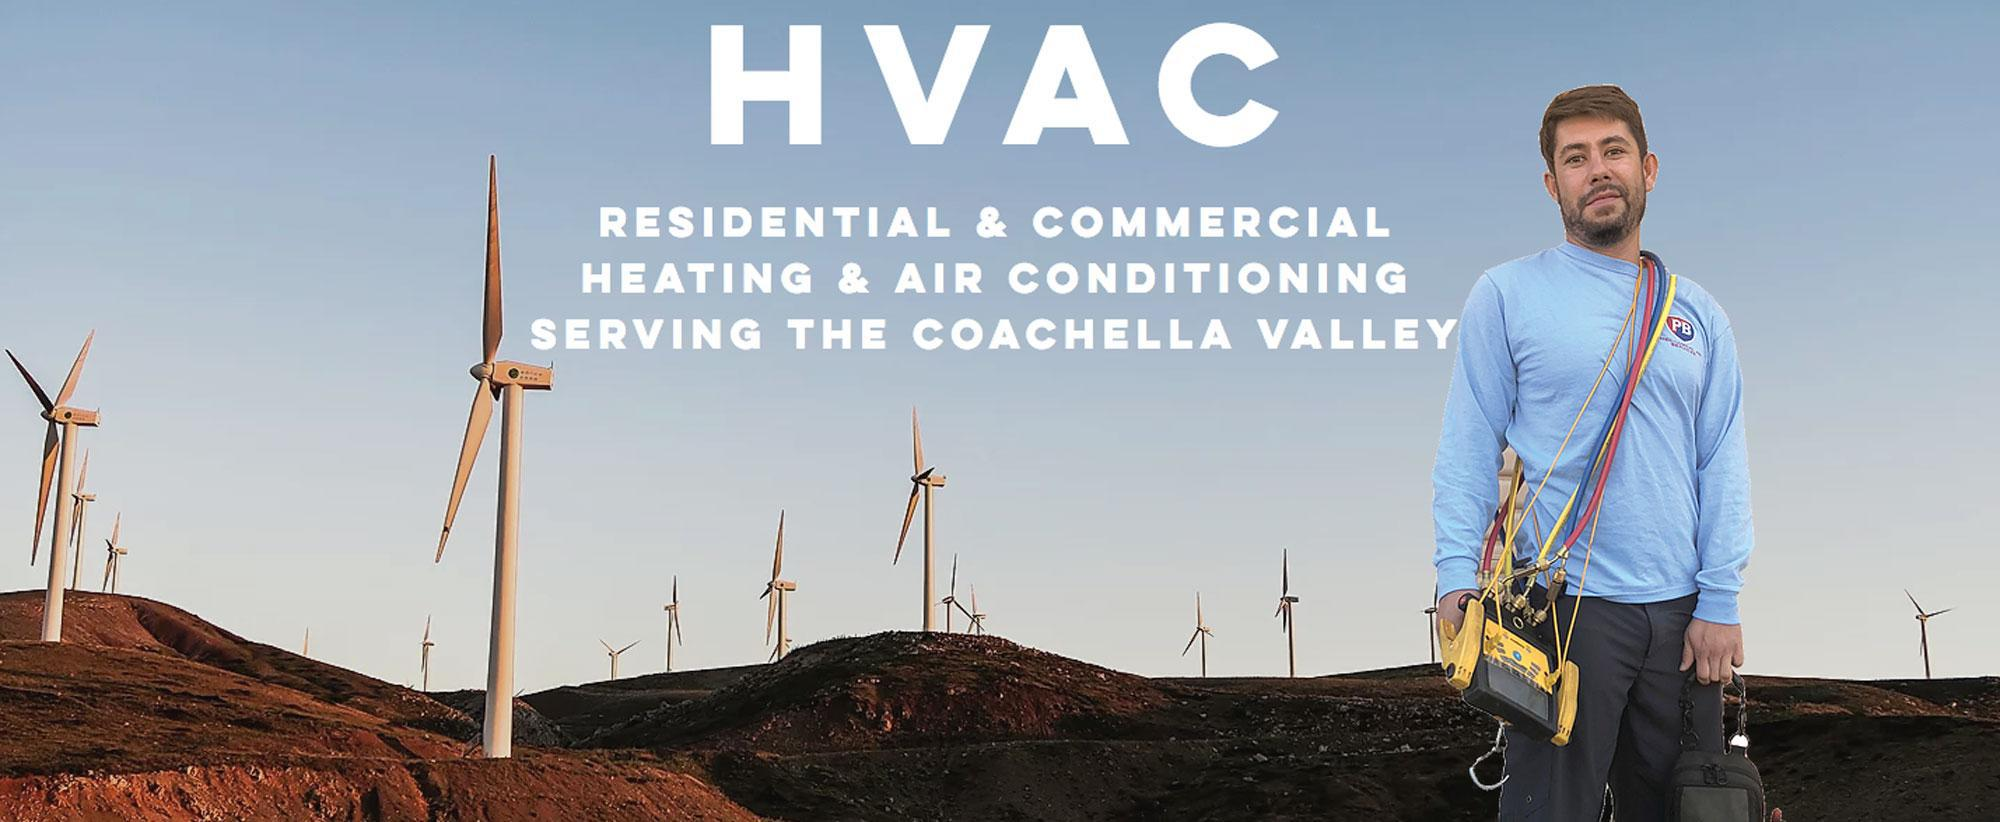 HVAC - Residential and Commercial Heating and Air Conditioning Serving the Coachella Valley